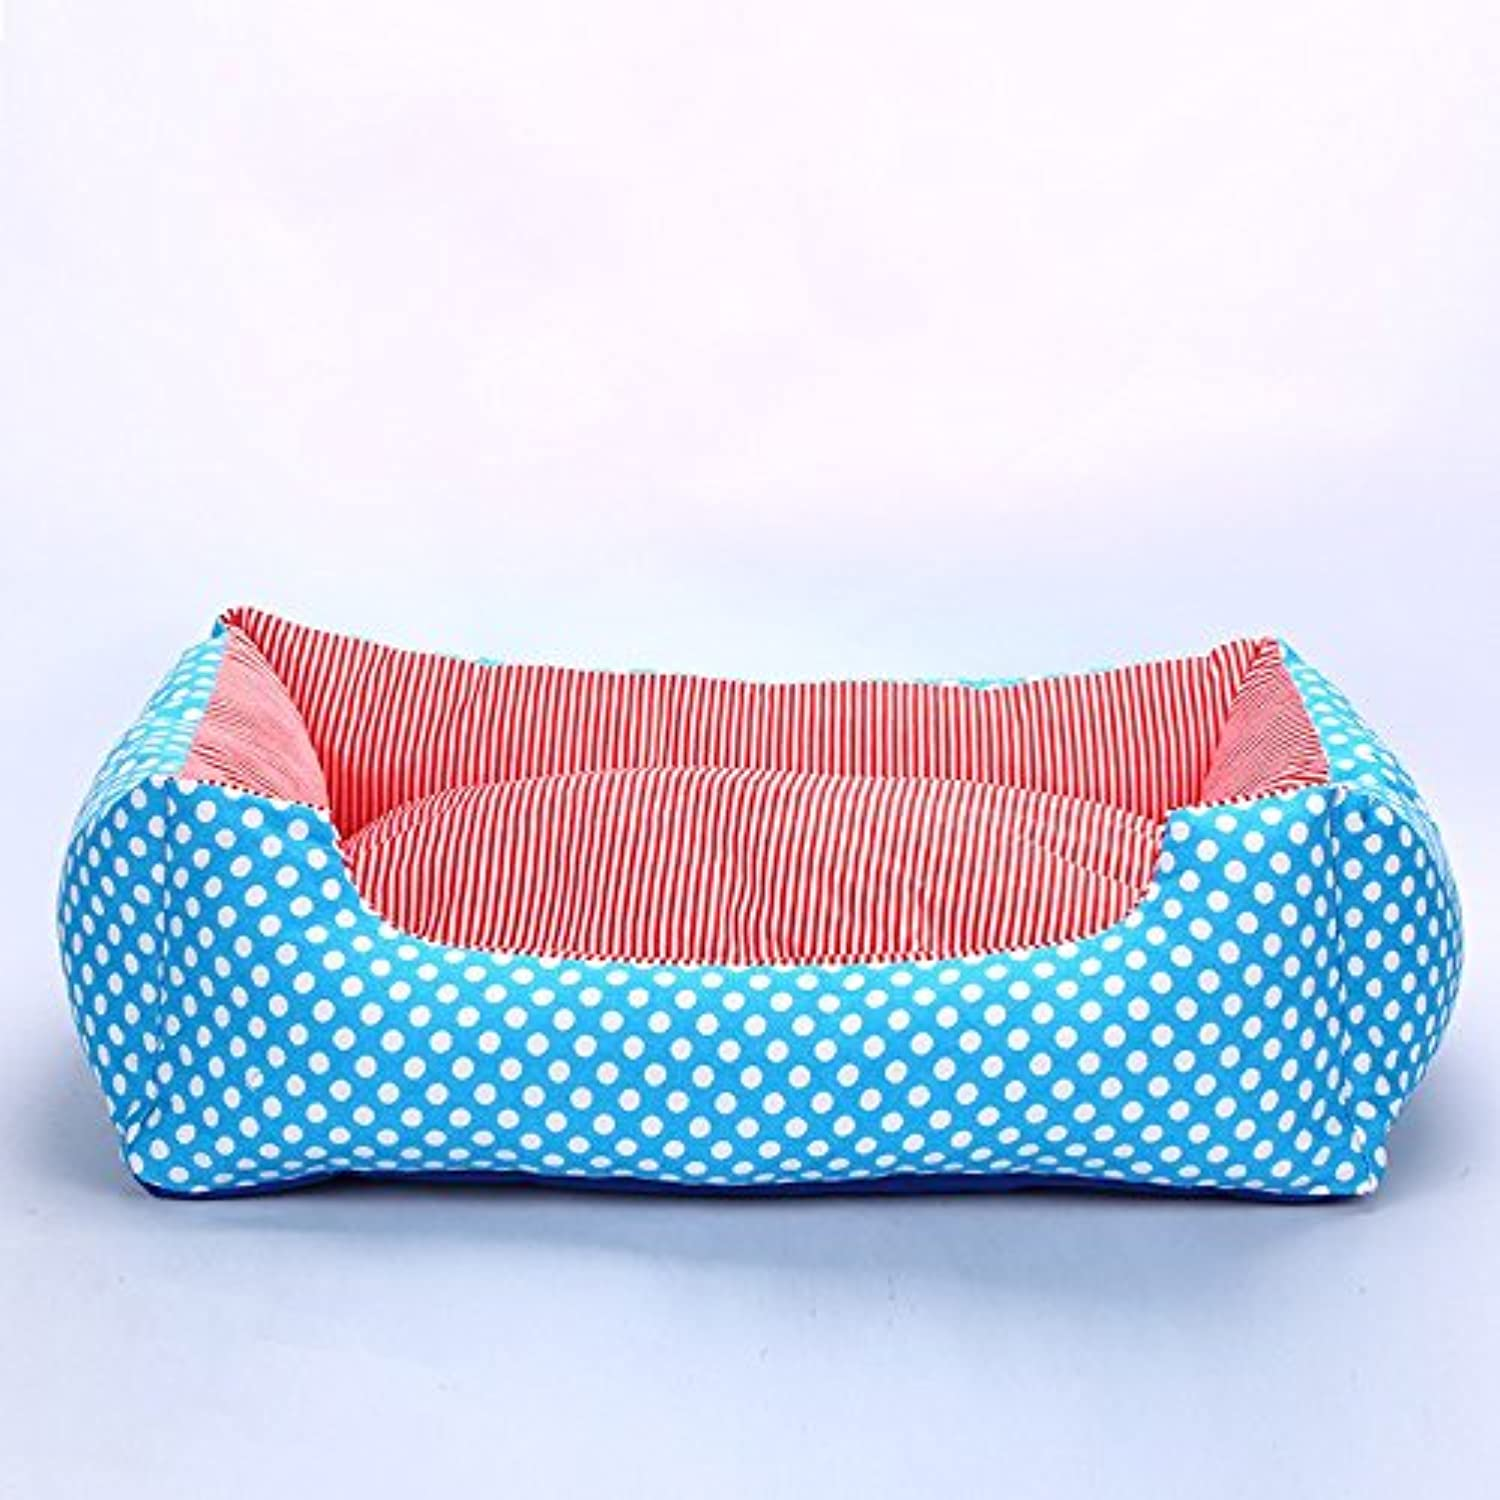 Pet Online Doghouse Square Striped Disposable and Washable Cotton Thicker Pet Bed Four Seasons Warm, XL  70  50  20cm, bluee